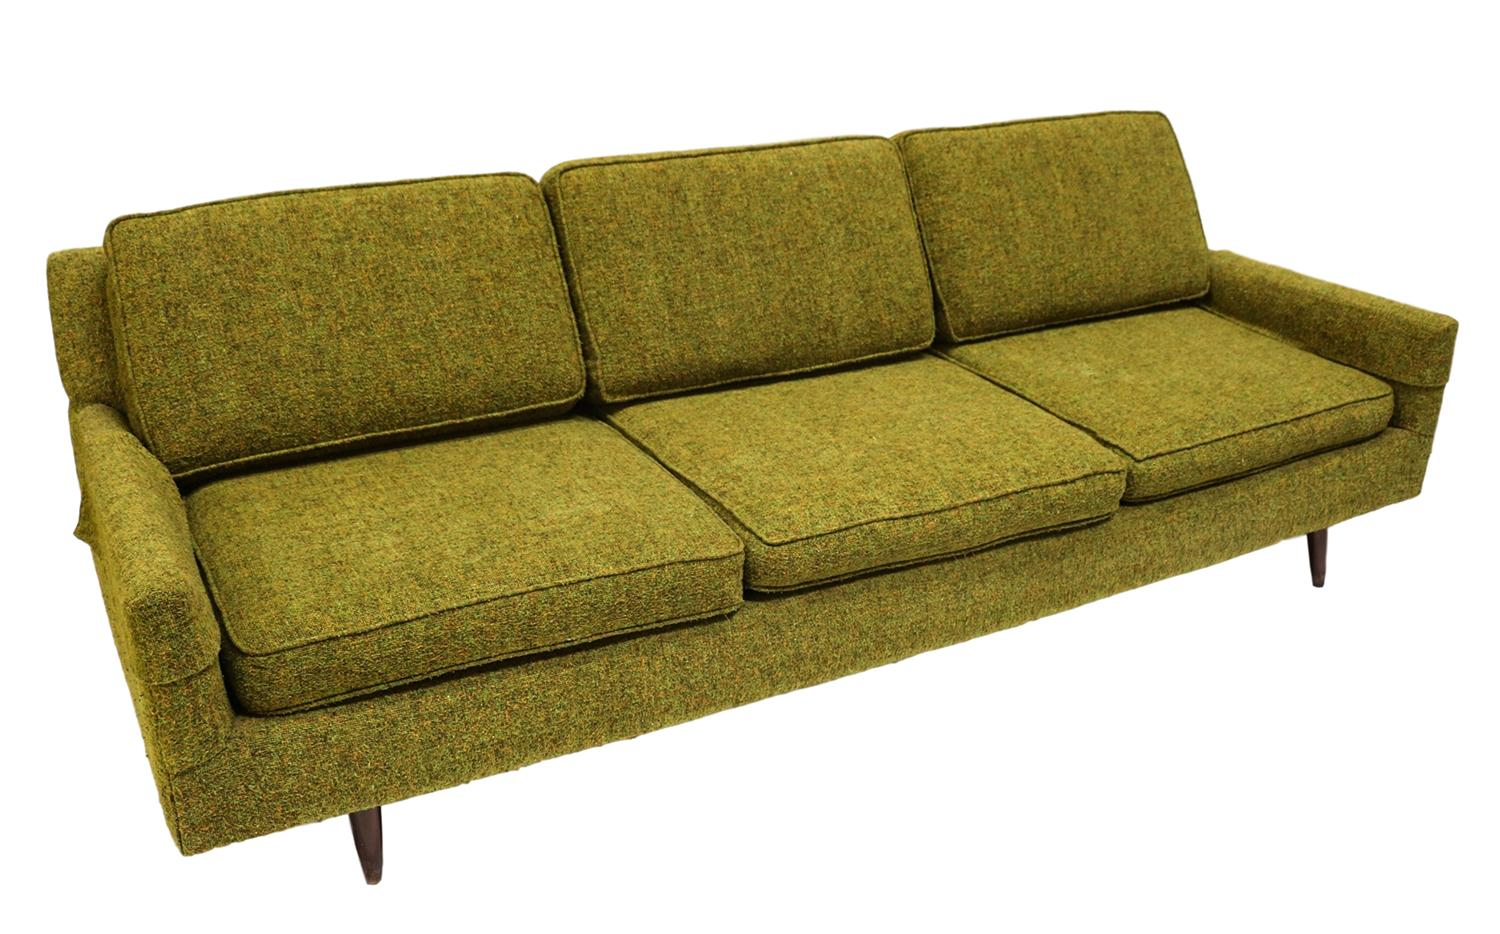 Pillows For Mid Century Modern Sofa : Mid-Century Modern Green Upholstered Sofa Chairish